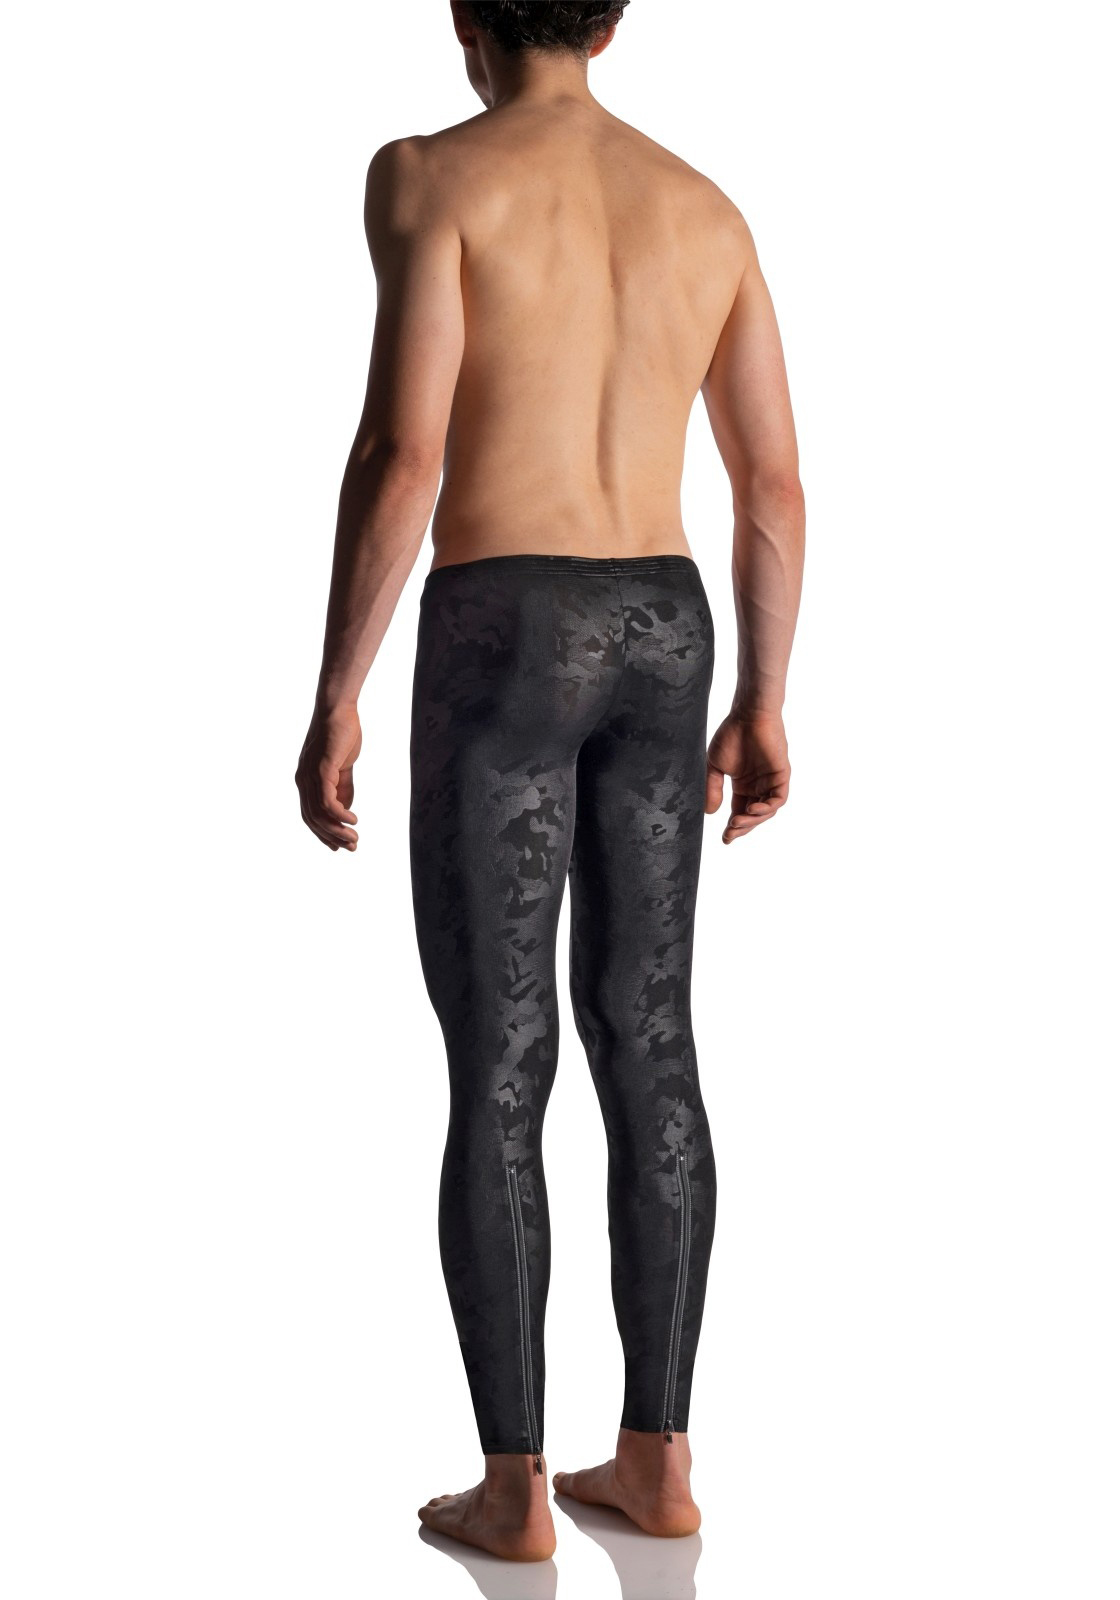 MANSTORE M950 Zipped Leggings